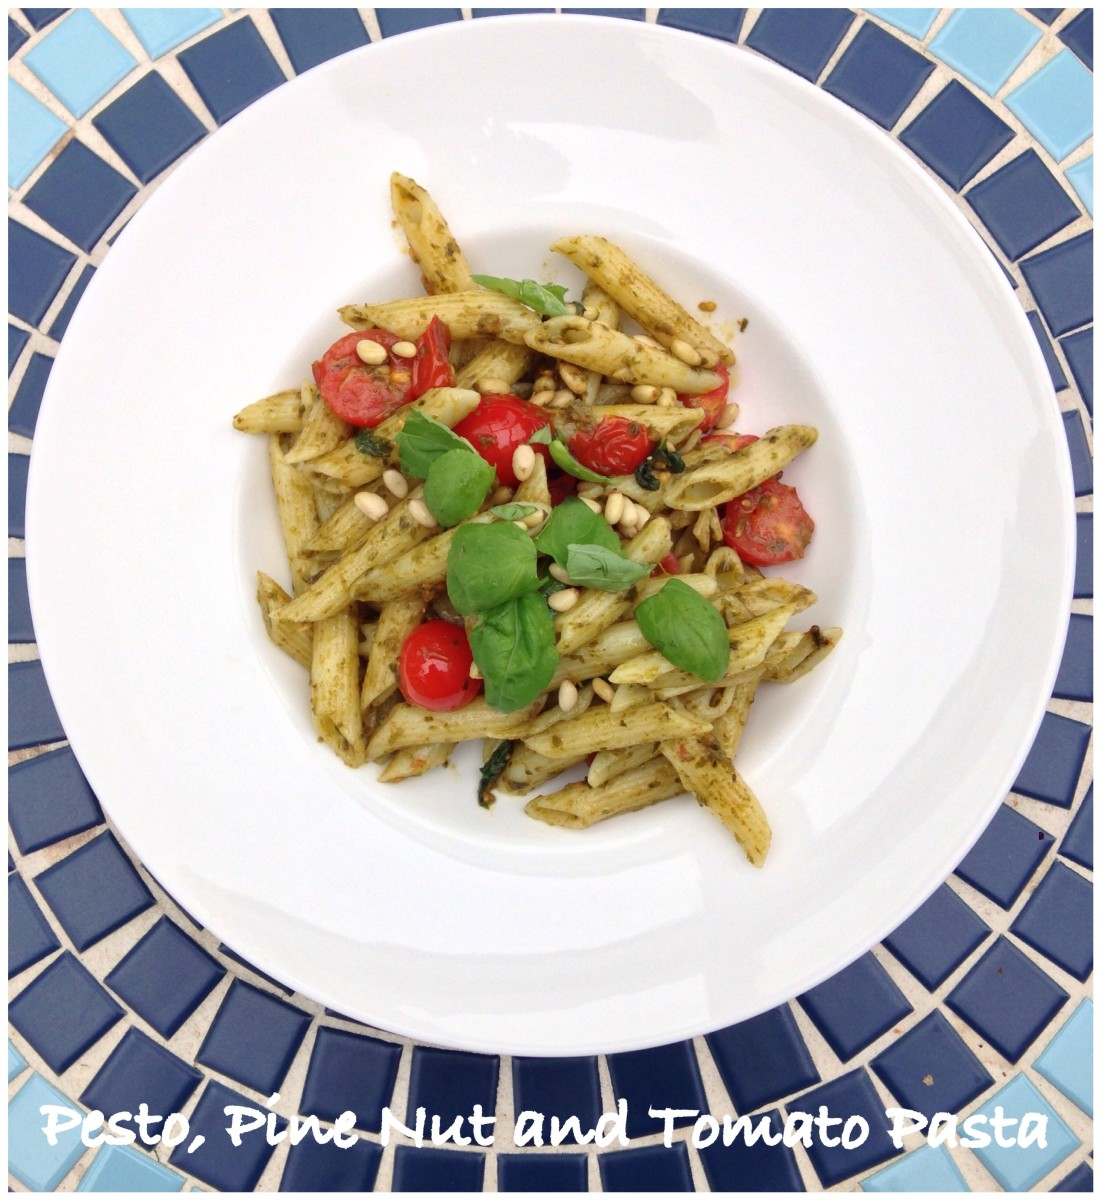 Pesto, Pine Nuts and Tomato Pasta